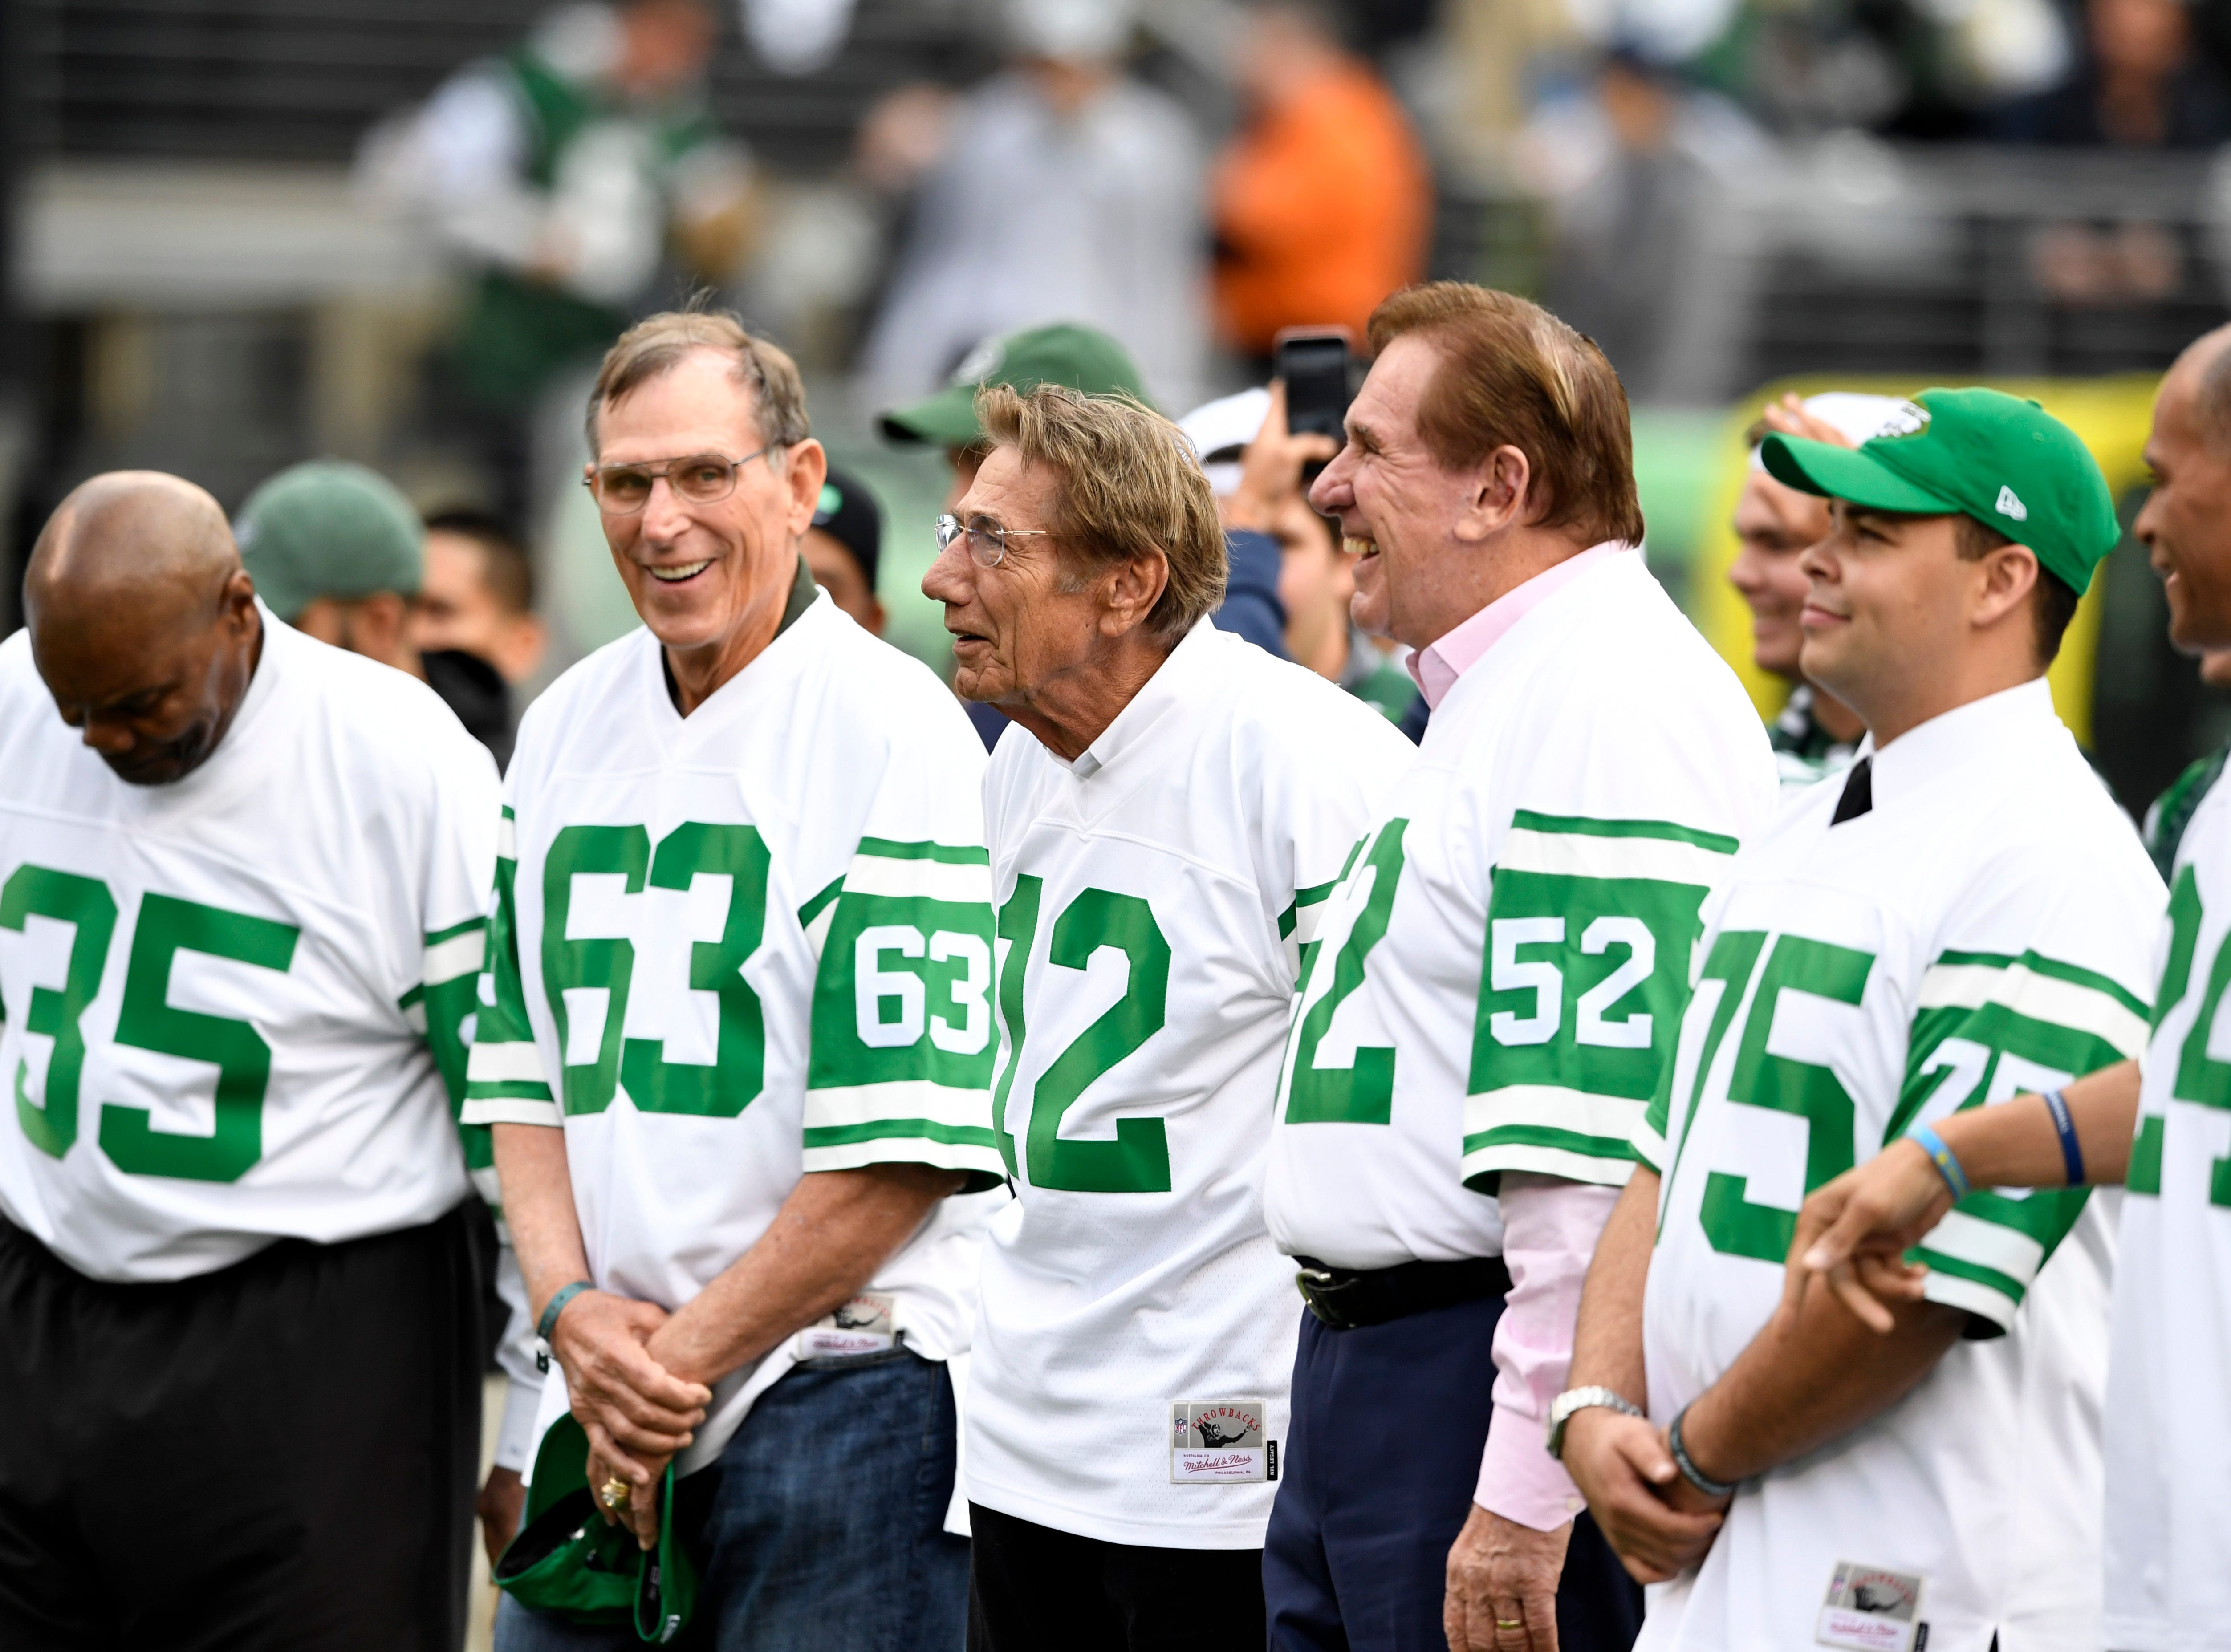 The New York Jets celebrated their Super Bowl III winners, the 1968 Jets, including Joe Namath (12), during halftime. The New York Jets host the Indianapolis Colts in Week 6 on Sunday, Oct. 14, 2018, in East Rutherford.